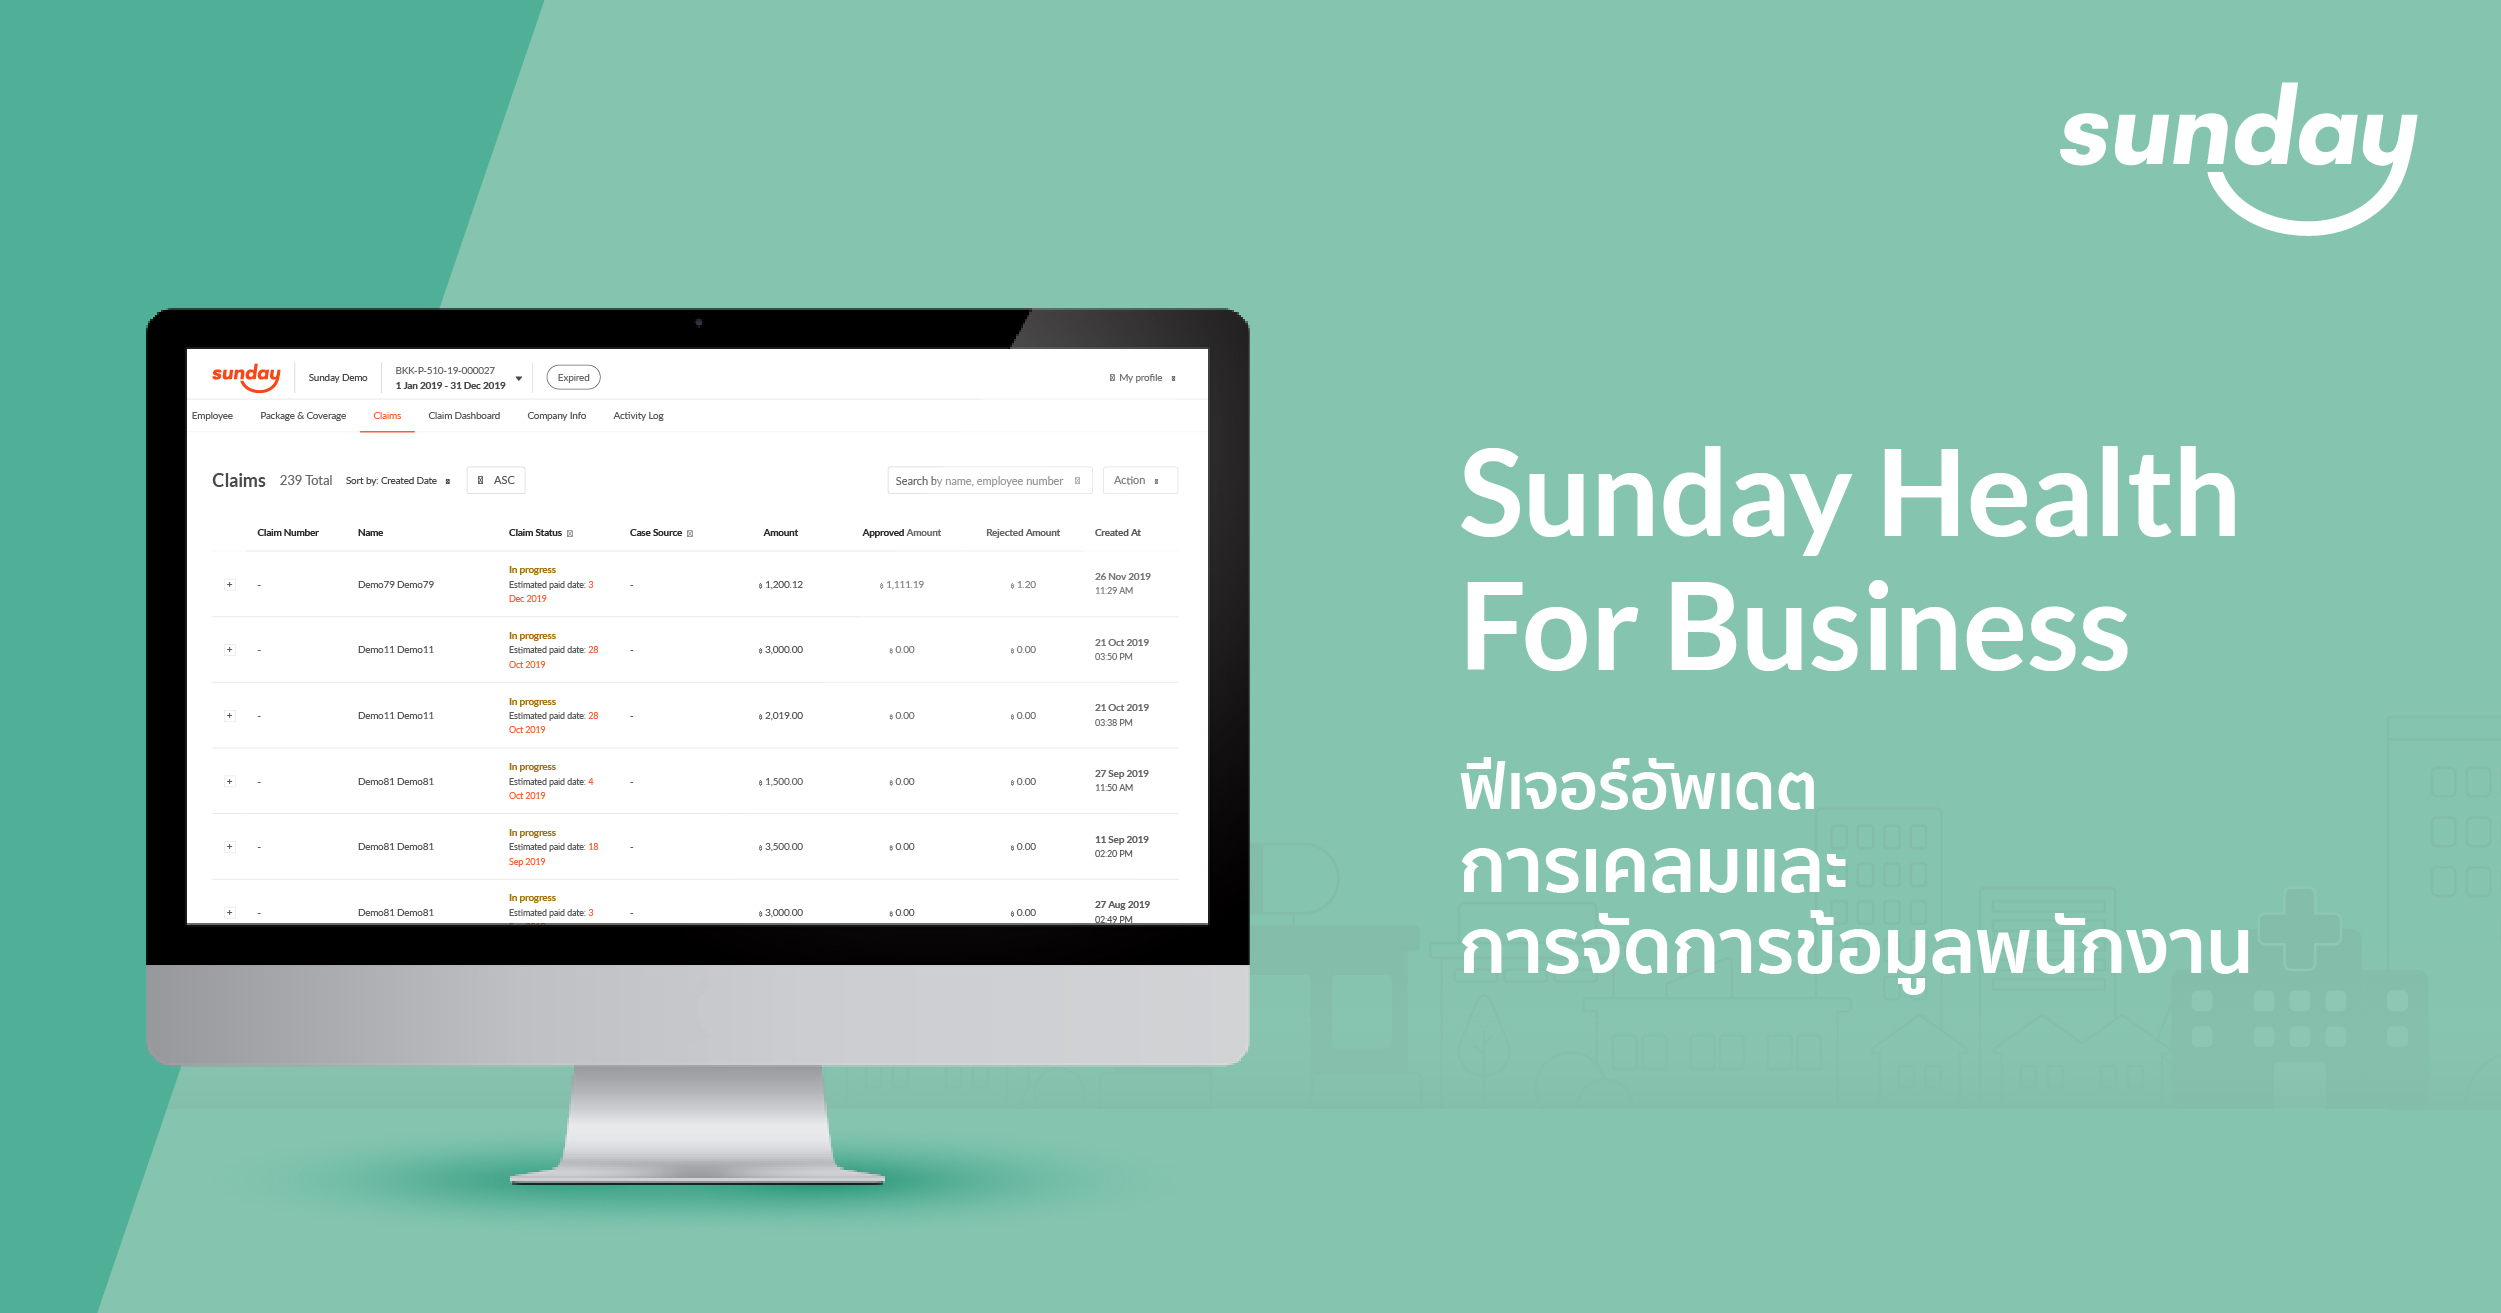 Sunday Health For Business Claim